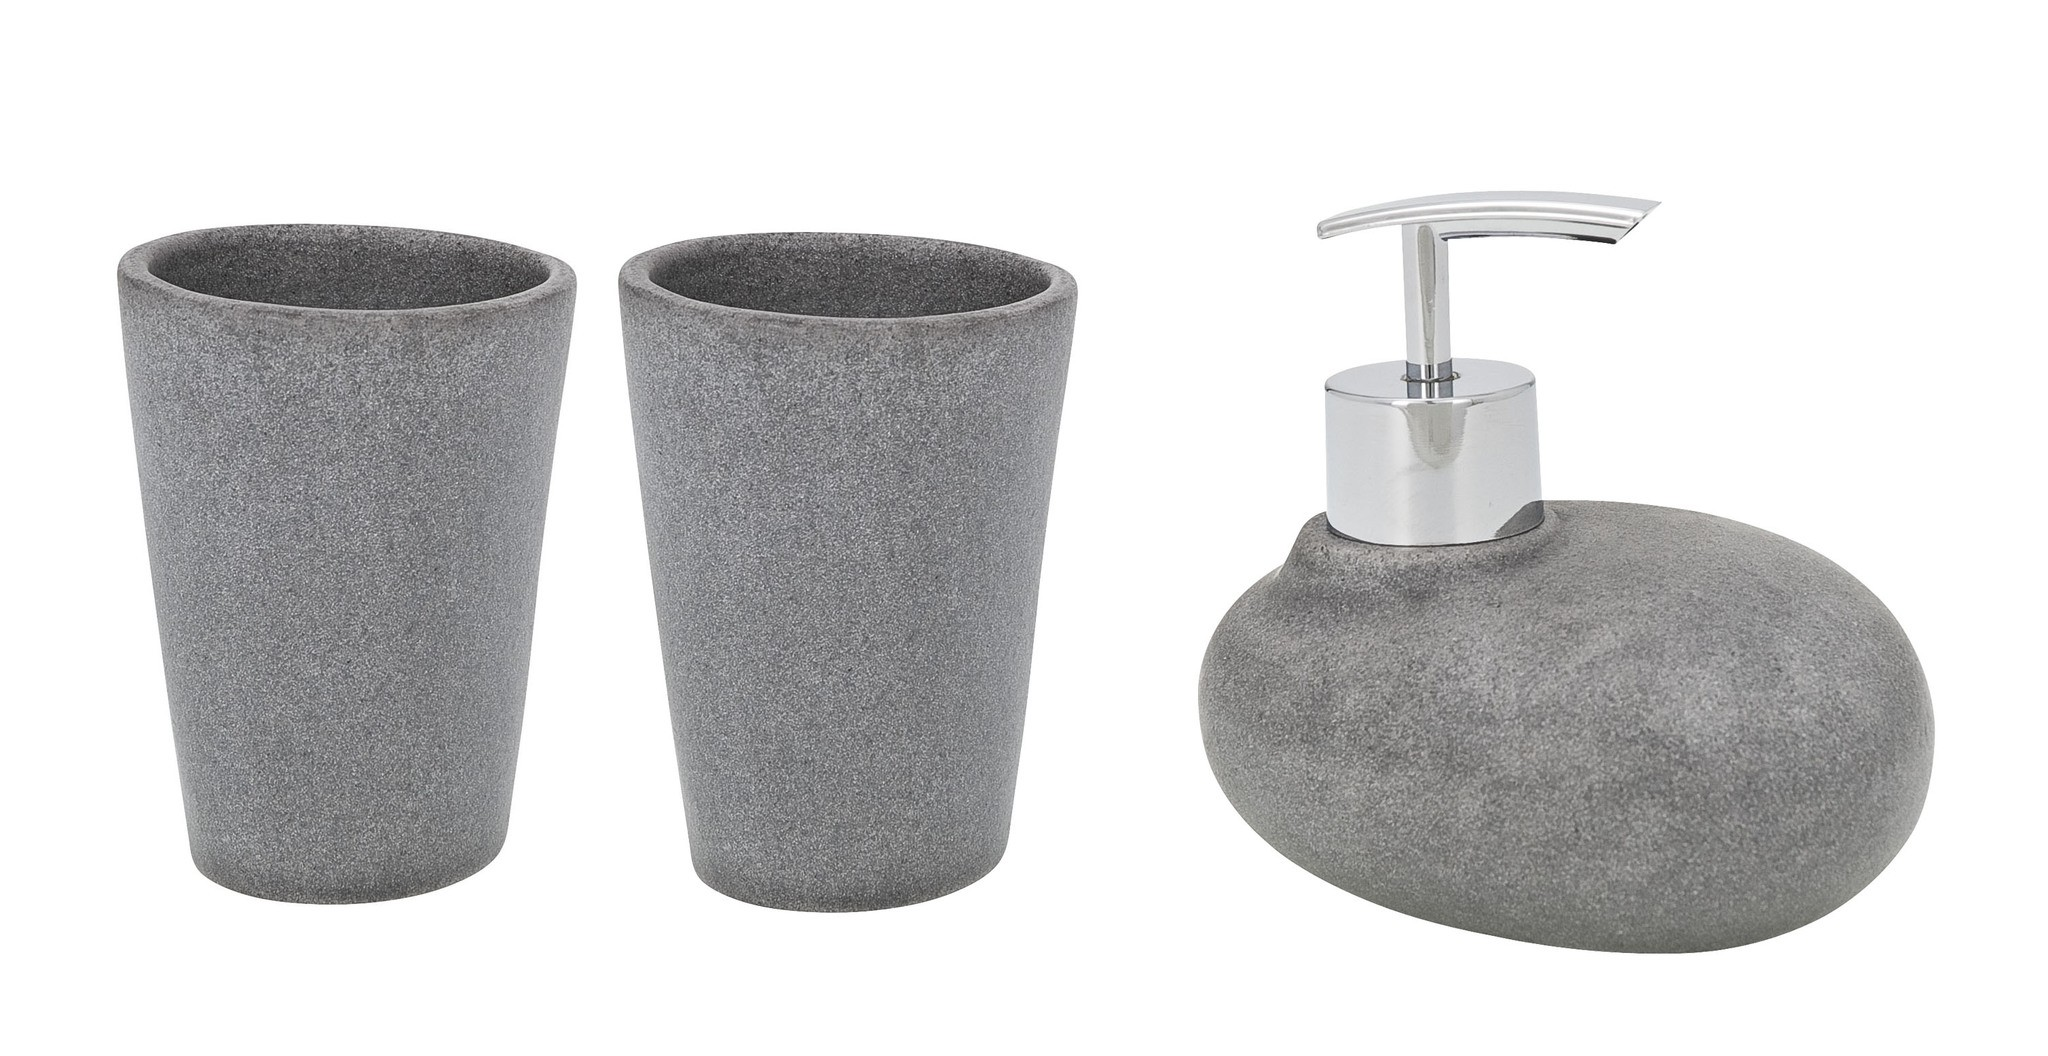 Wenko Bad-Accessoire-Set Pebble Stone Grey, 3-teilig